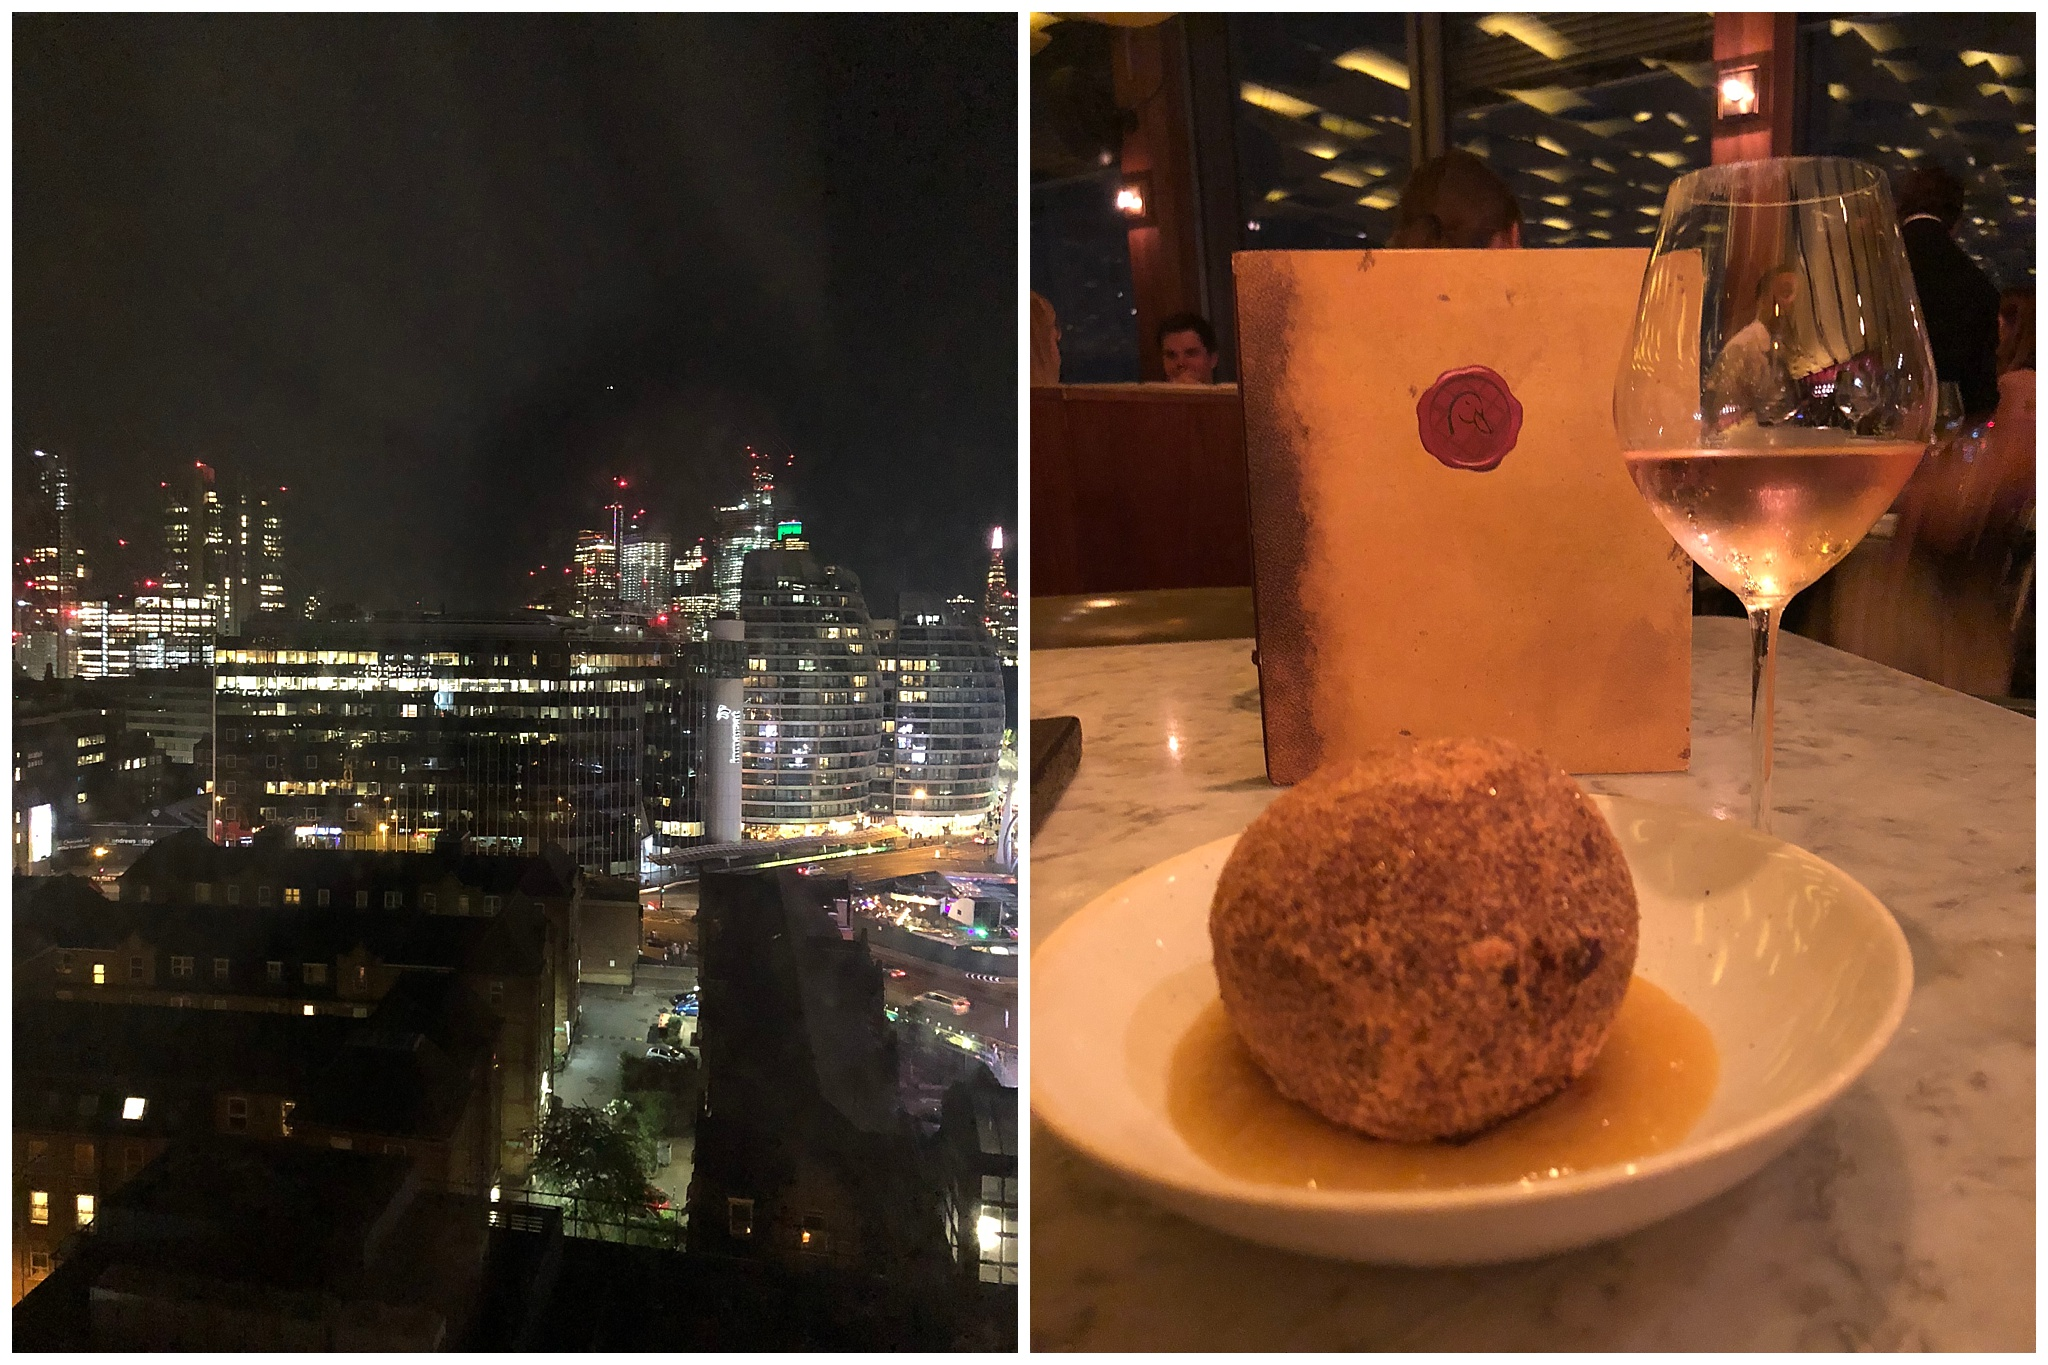 Had a dinner celebrating at Duck & Waffle, a restaurant 40 floors up! Getting me to drink like an adult is a task so kudos to this place for the insane food and yummy wine ;)